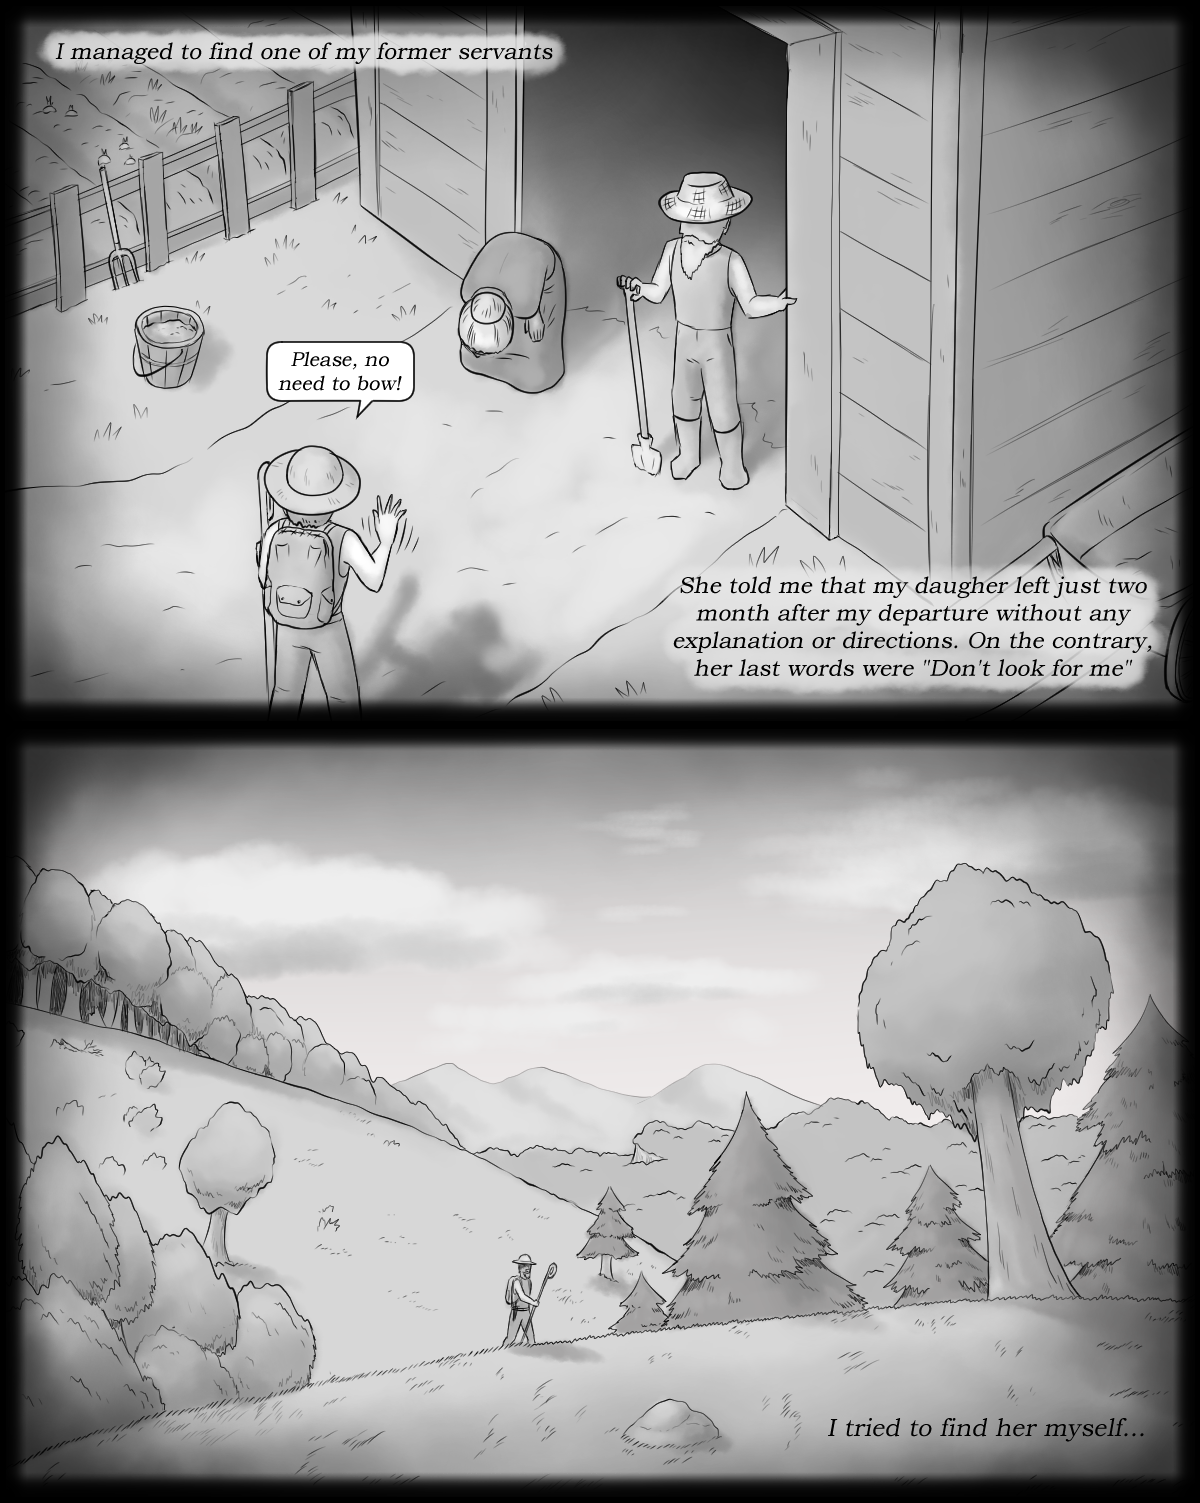 Page 100 - The lost treasure (Part 4)